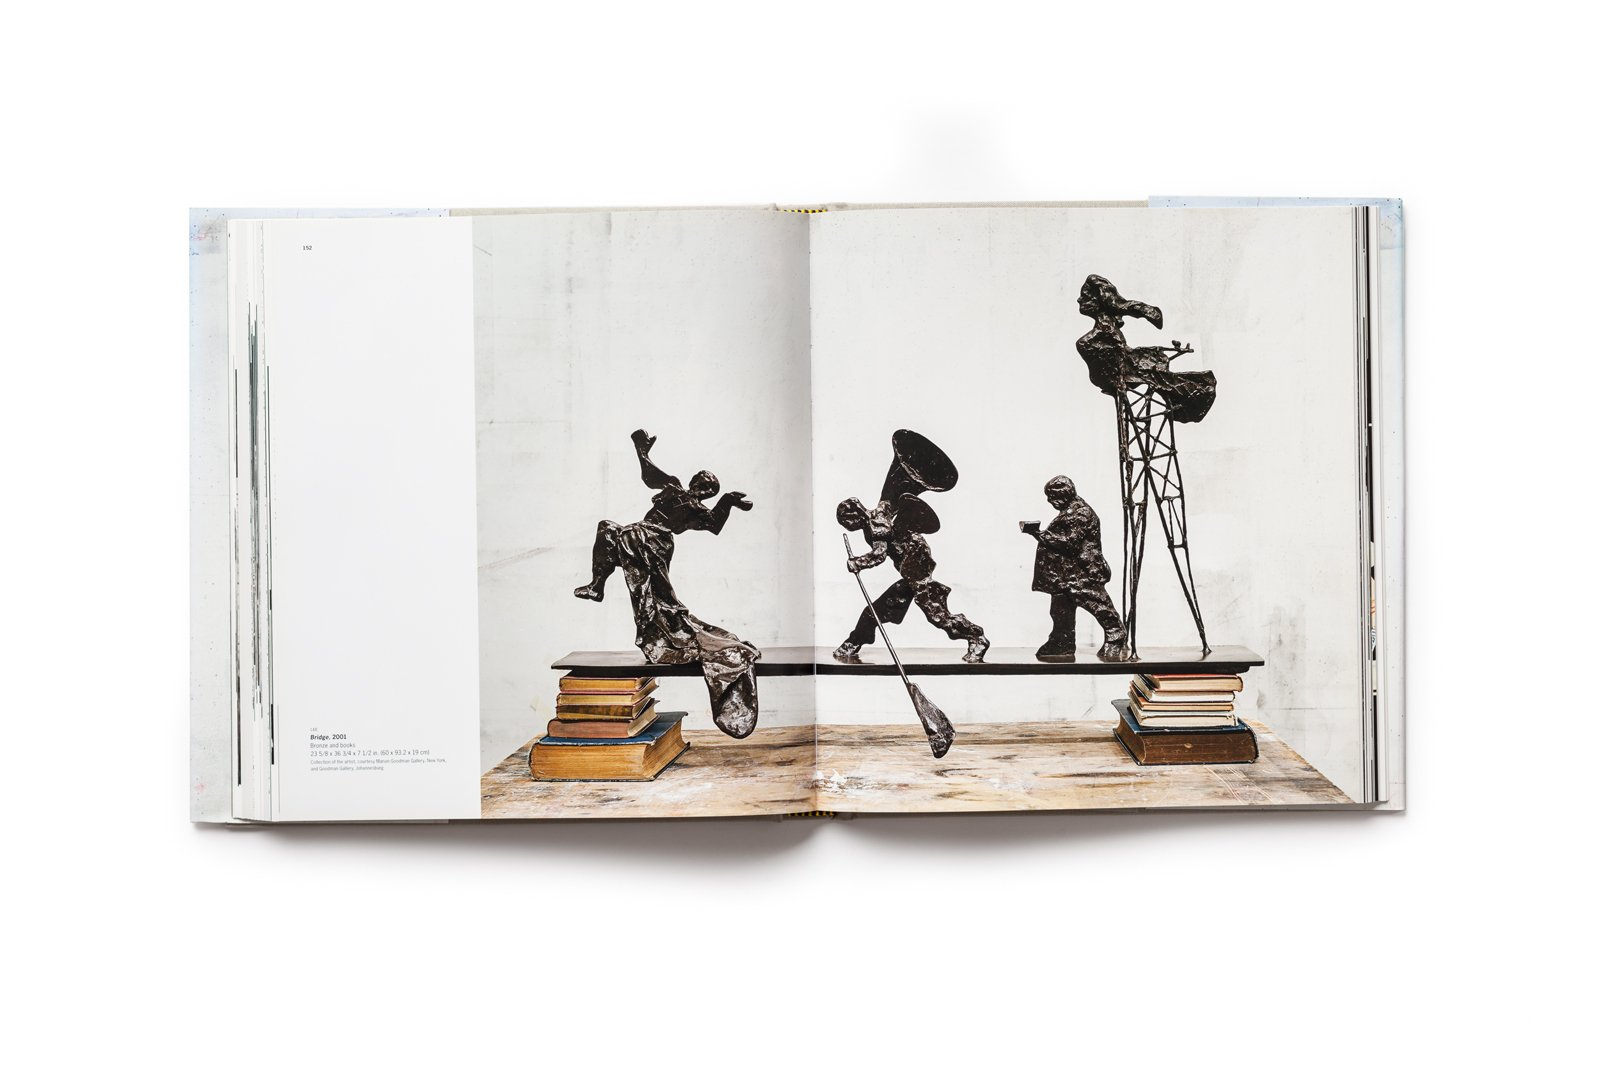 William Kentridge publication pages 152-153